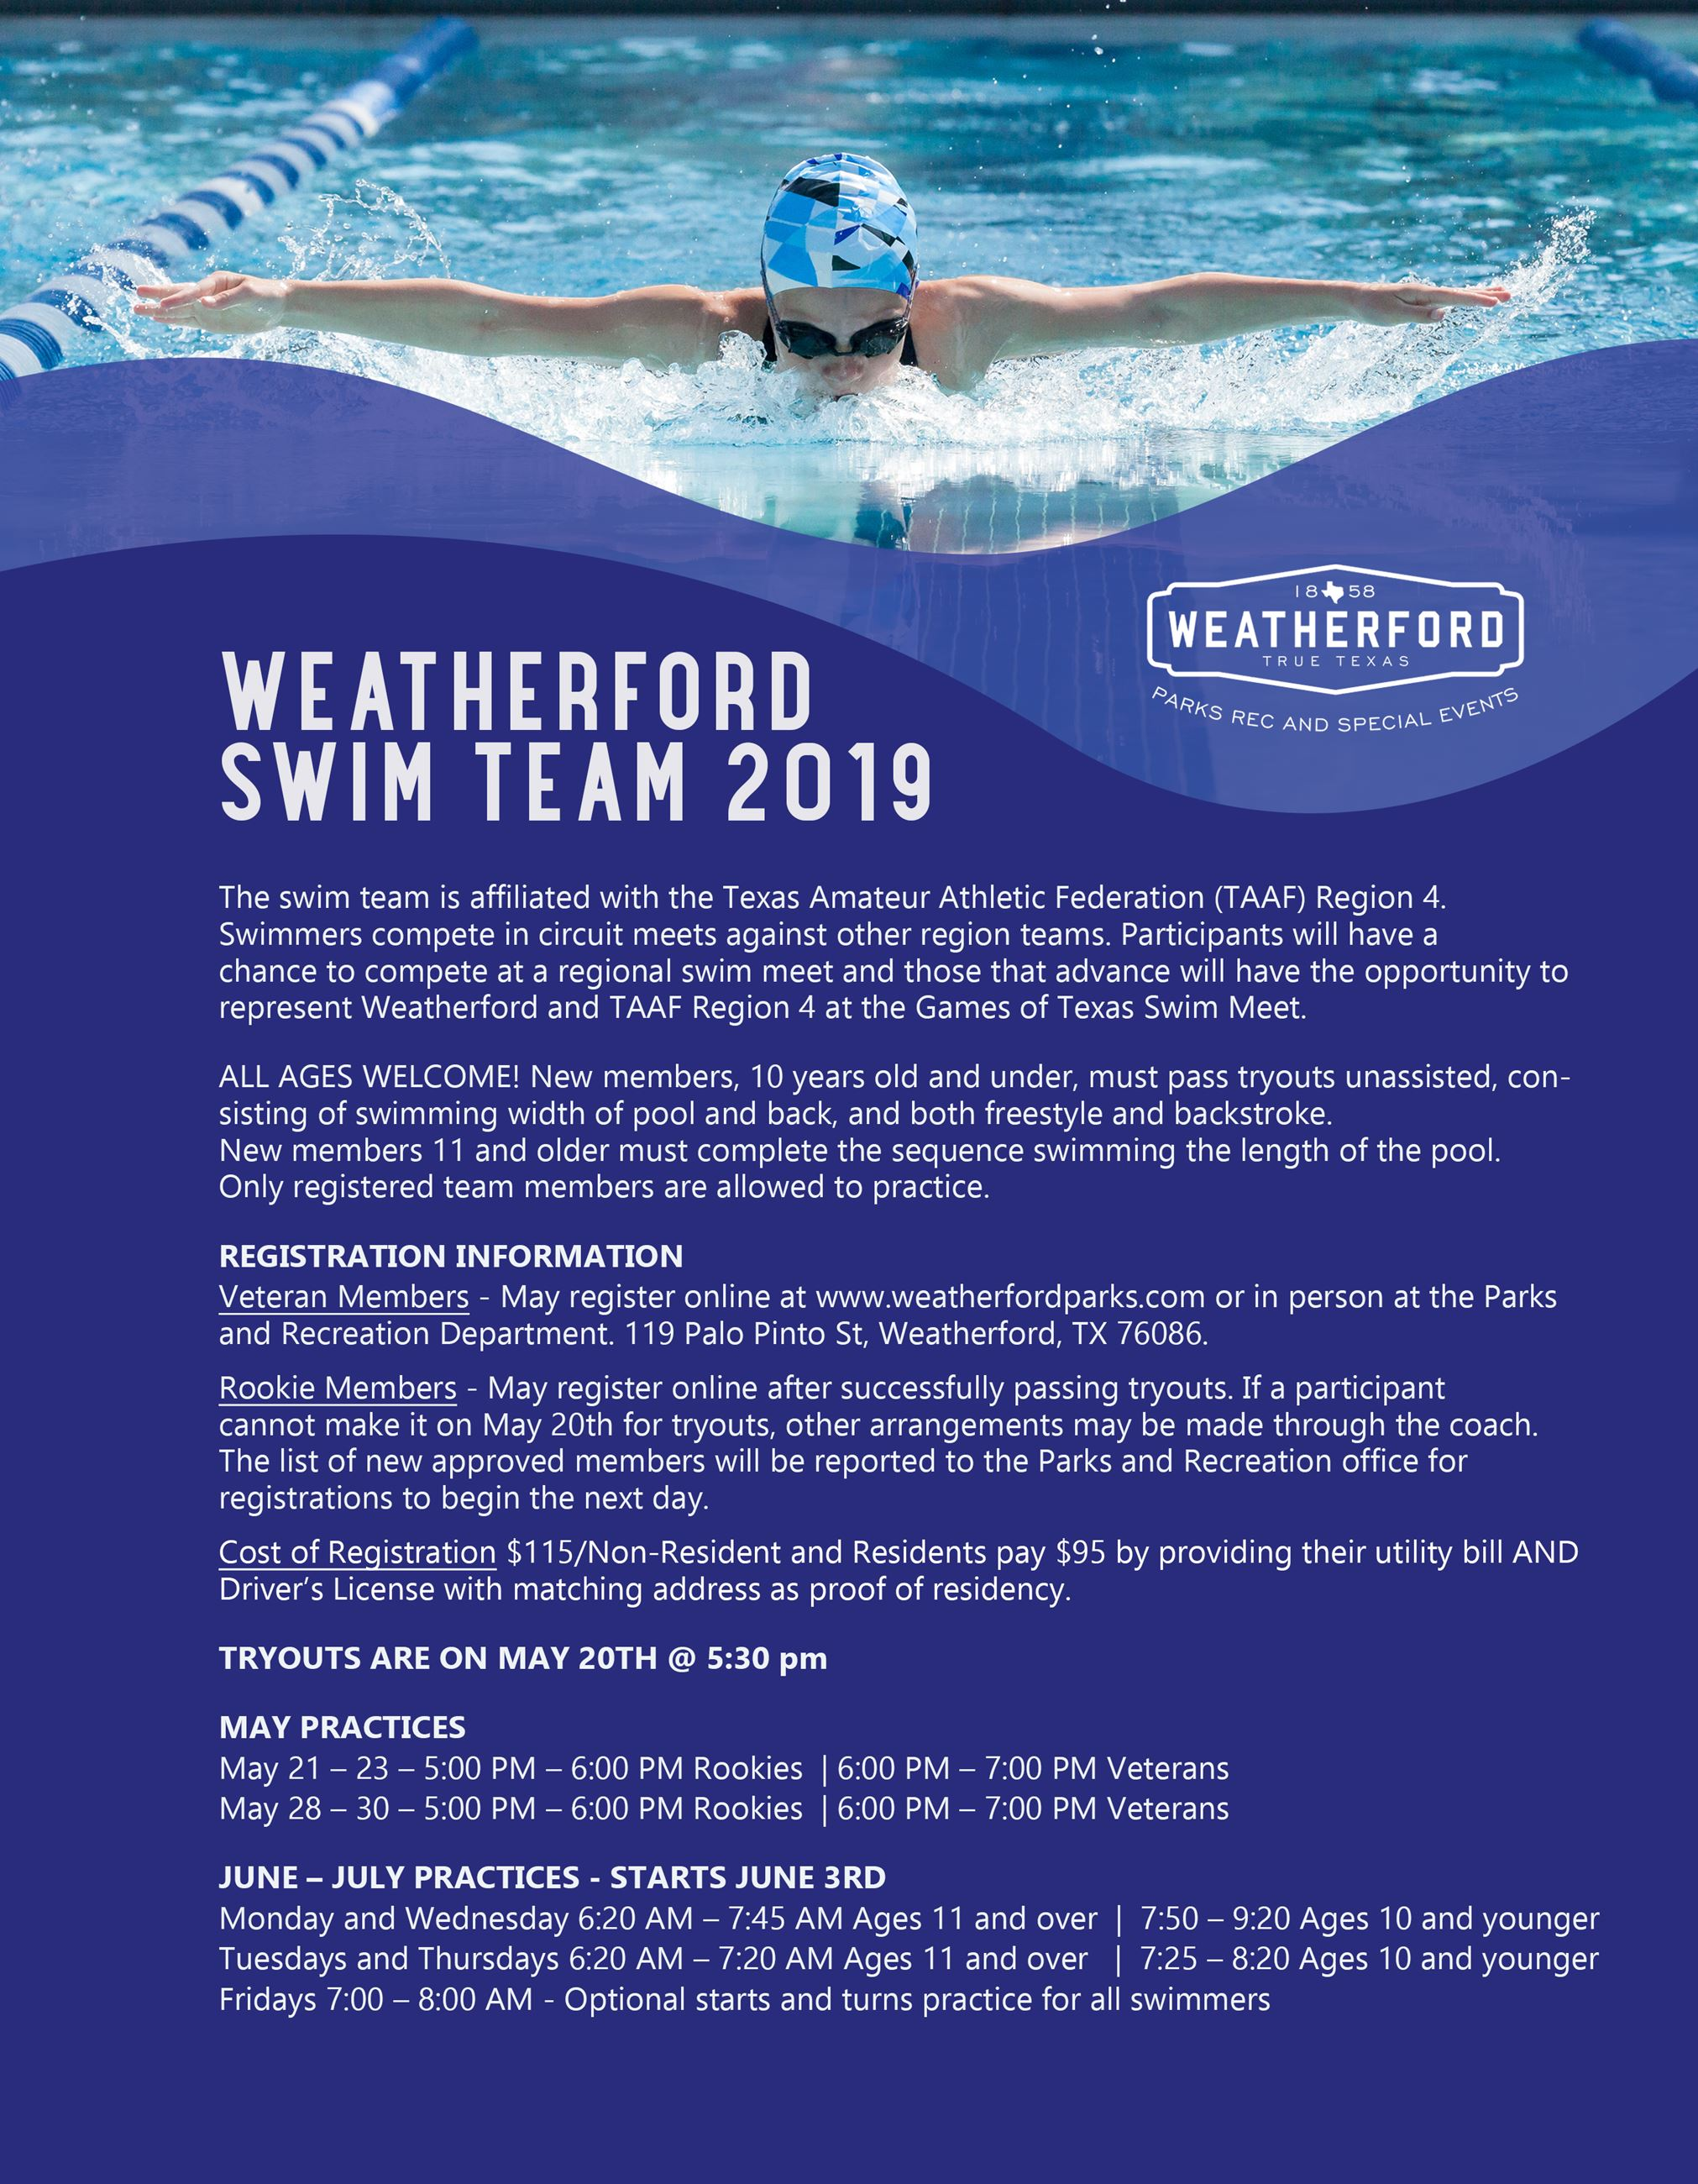 2019 Weatherford Swim Team Flyer